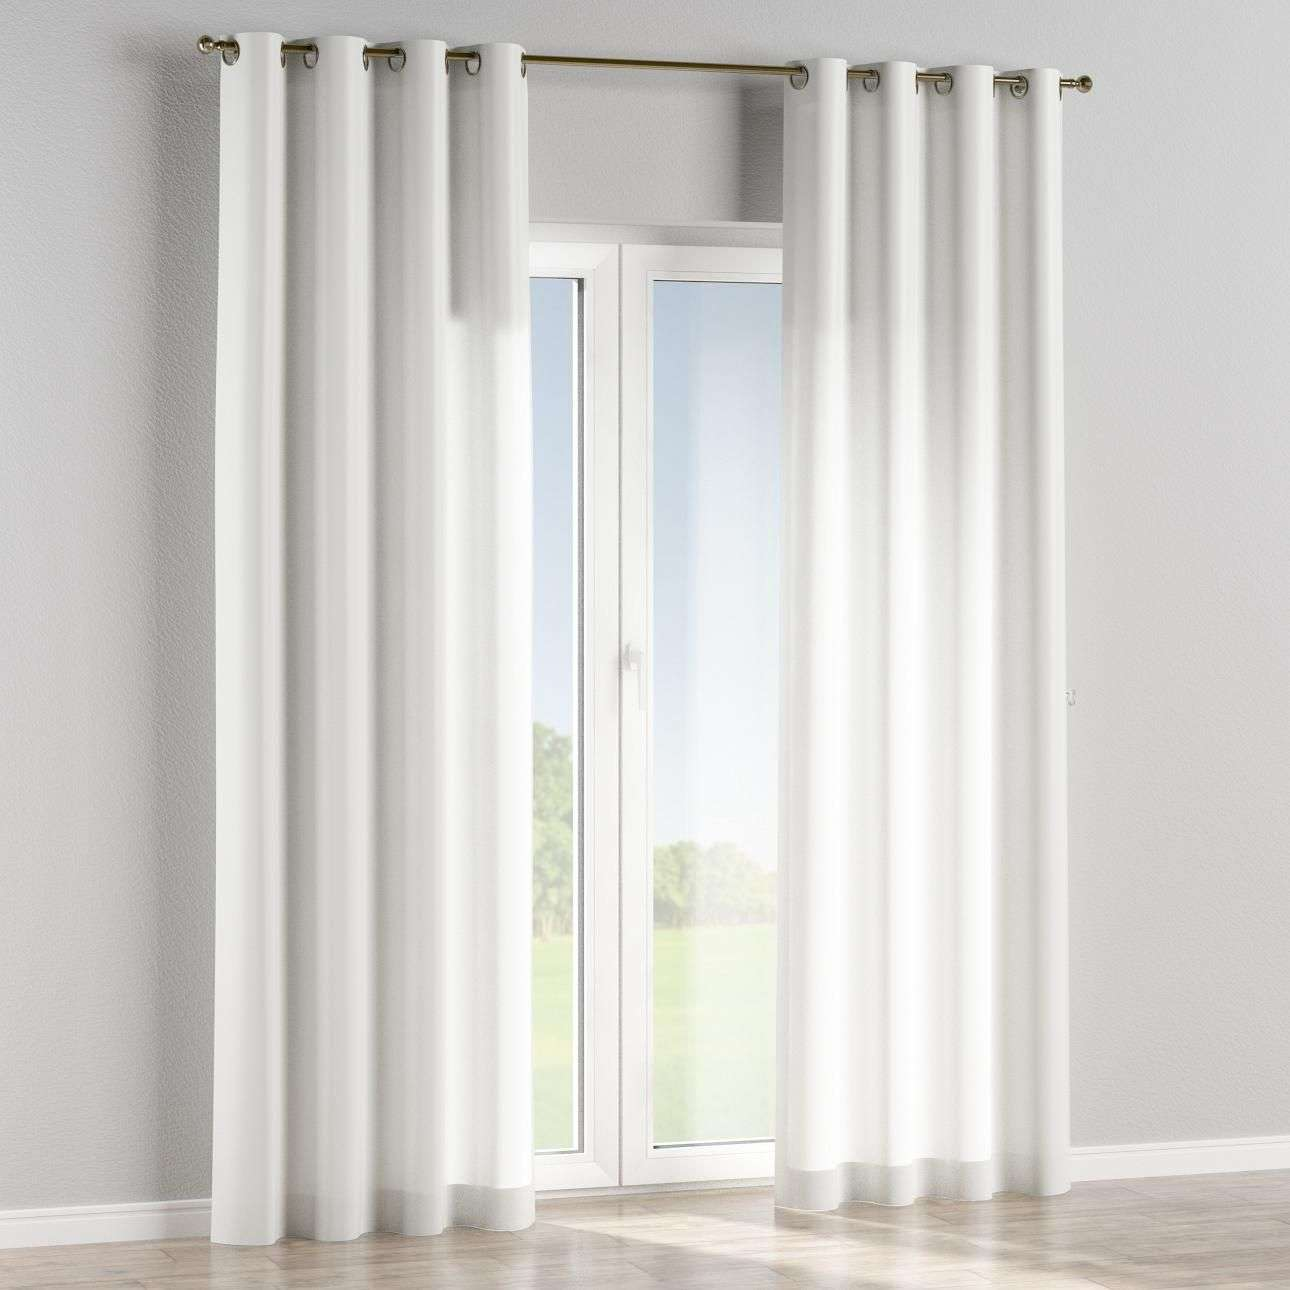 Eyelet curtains in collection Rustica, fabric: 140-31